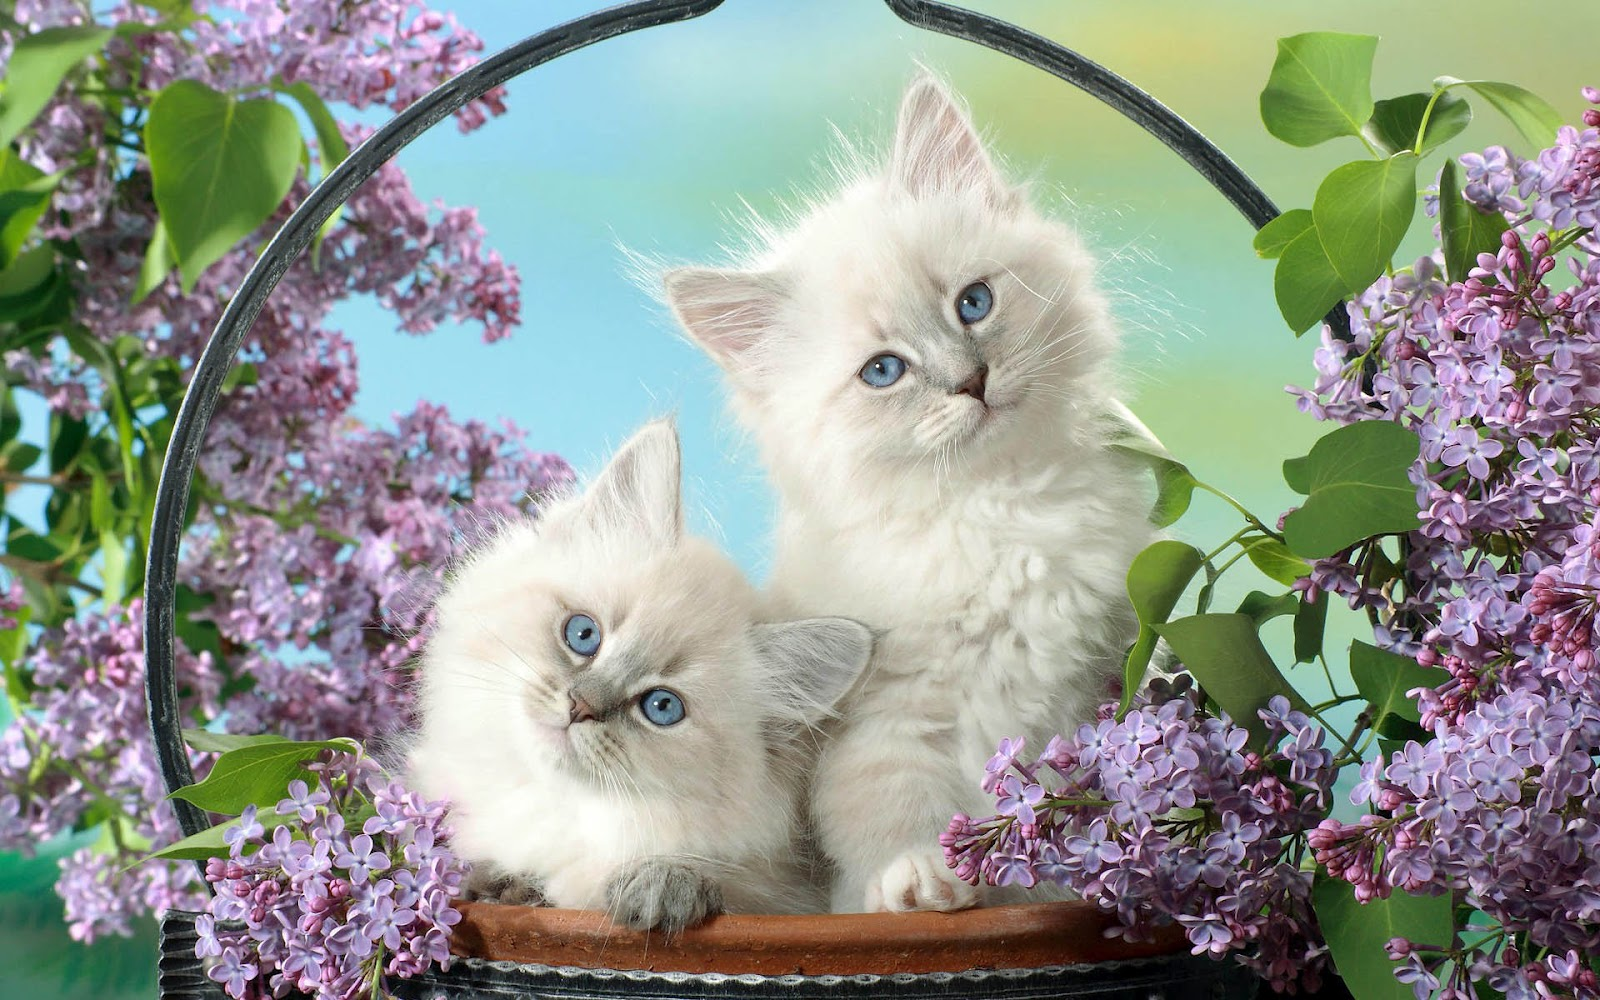 Stunning Black Wallpapers Cute Cats Amp Dogs Wallpapers Images Free Download For